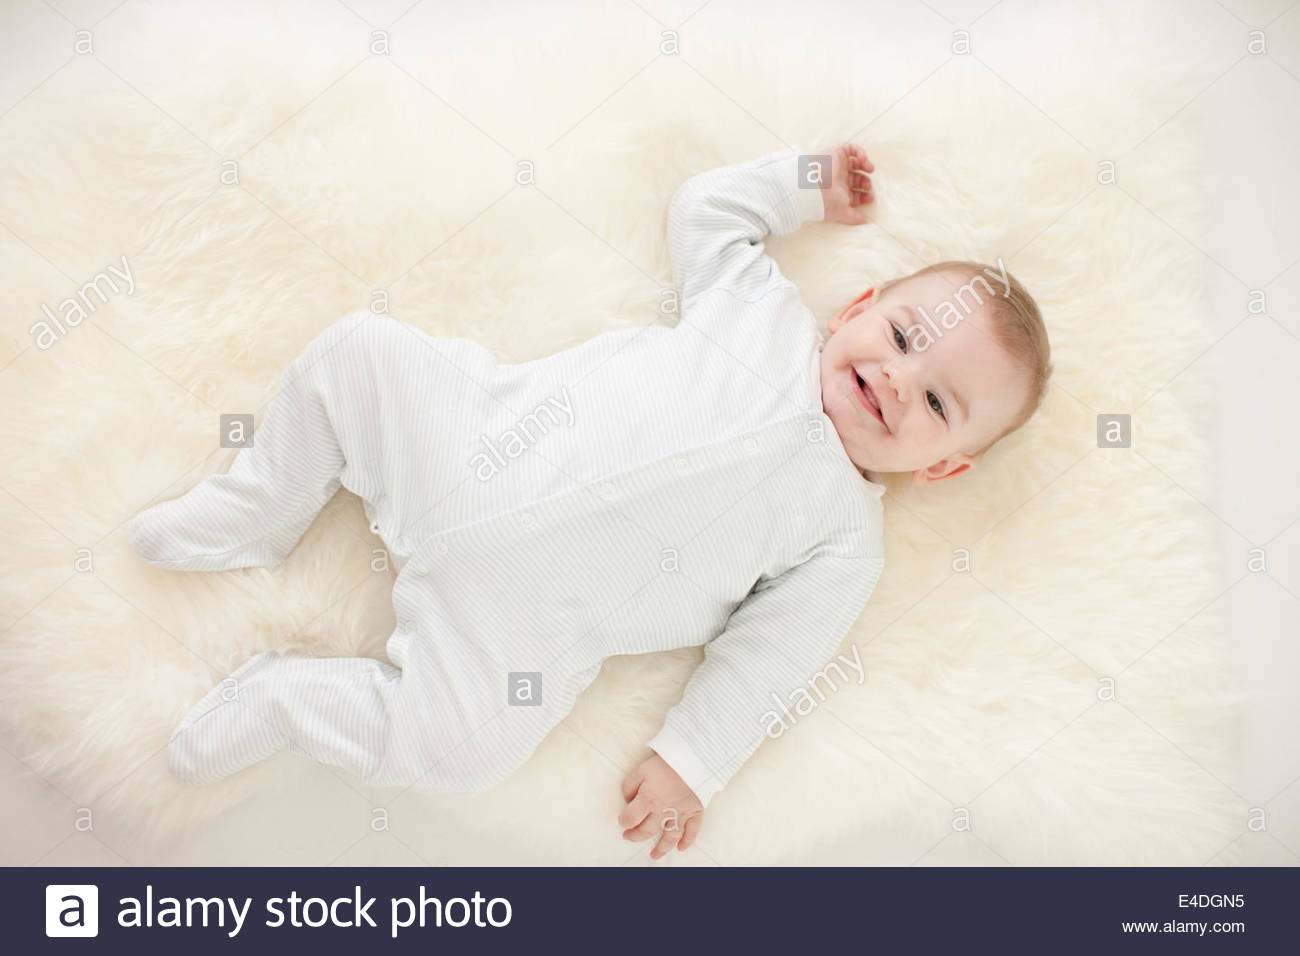 Smiling baby laying on rug Photo Stock